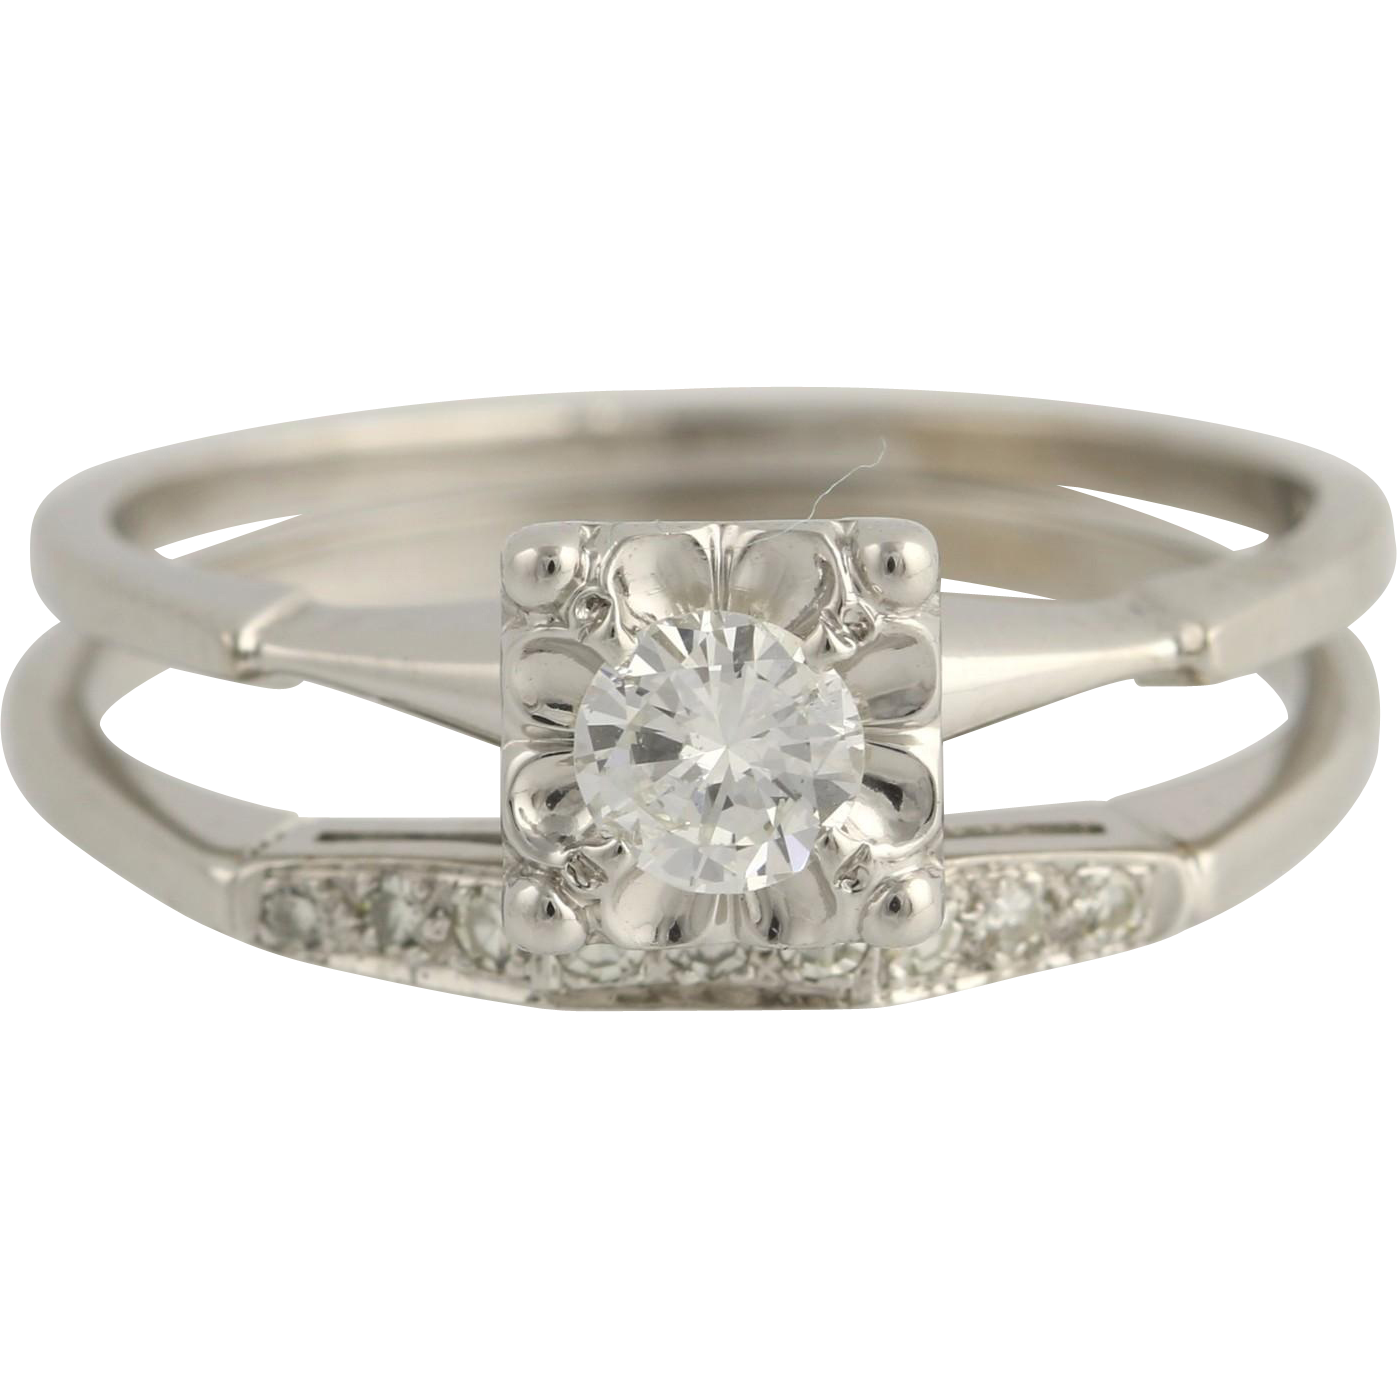 Vintage Diamond Engagement Ring & Wedding Band Set - 14k White Gold .51ctw Unique Engagement Ring